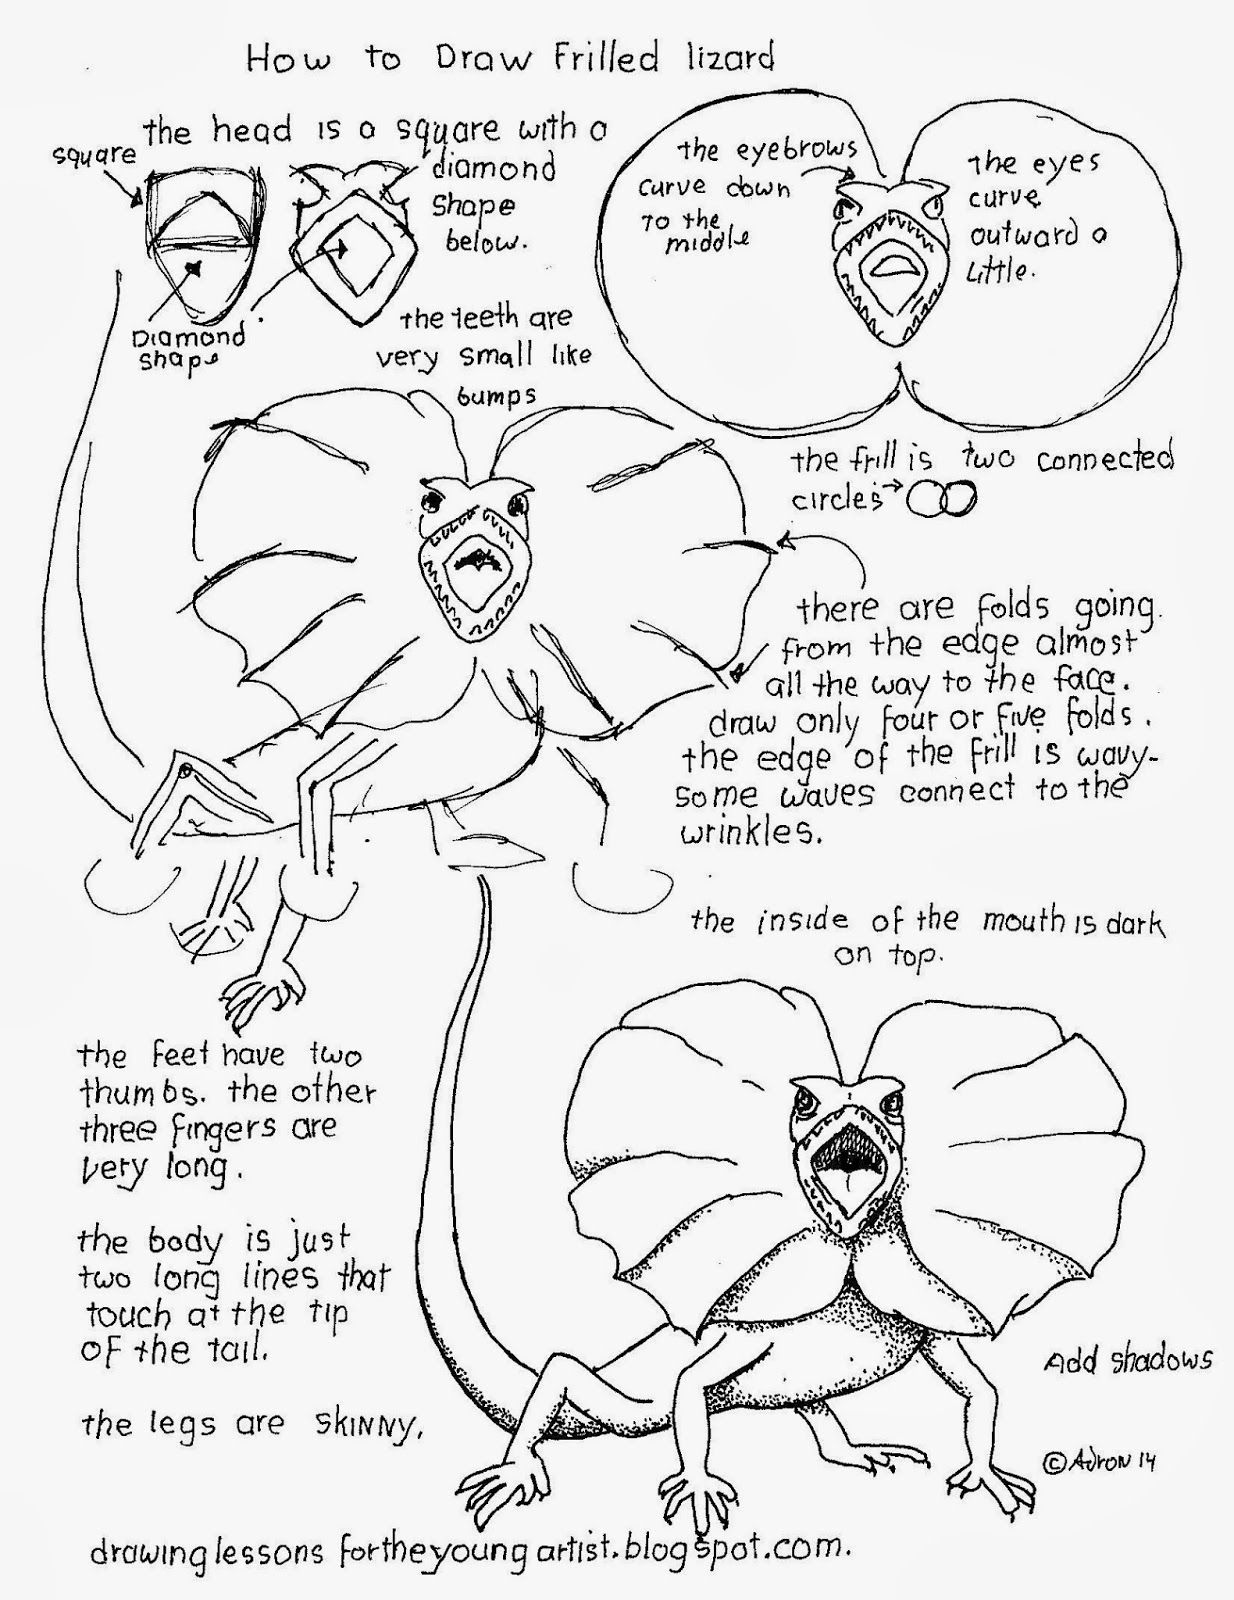 Free How To Draw An Australian Frilled Lizard Worksheet How To Draw Worksheets For Young Artist